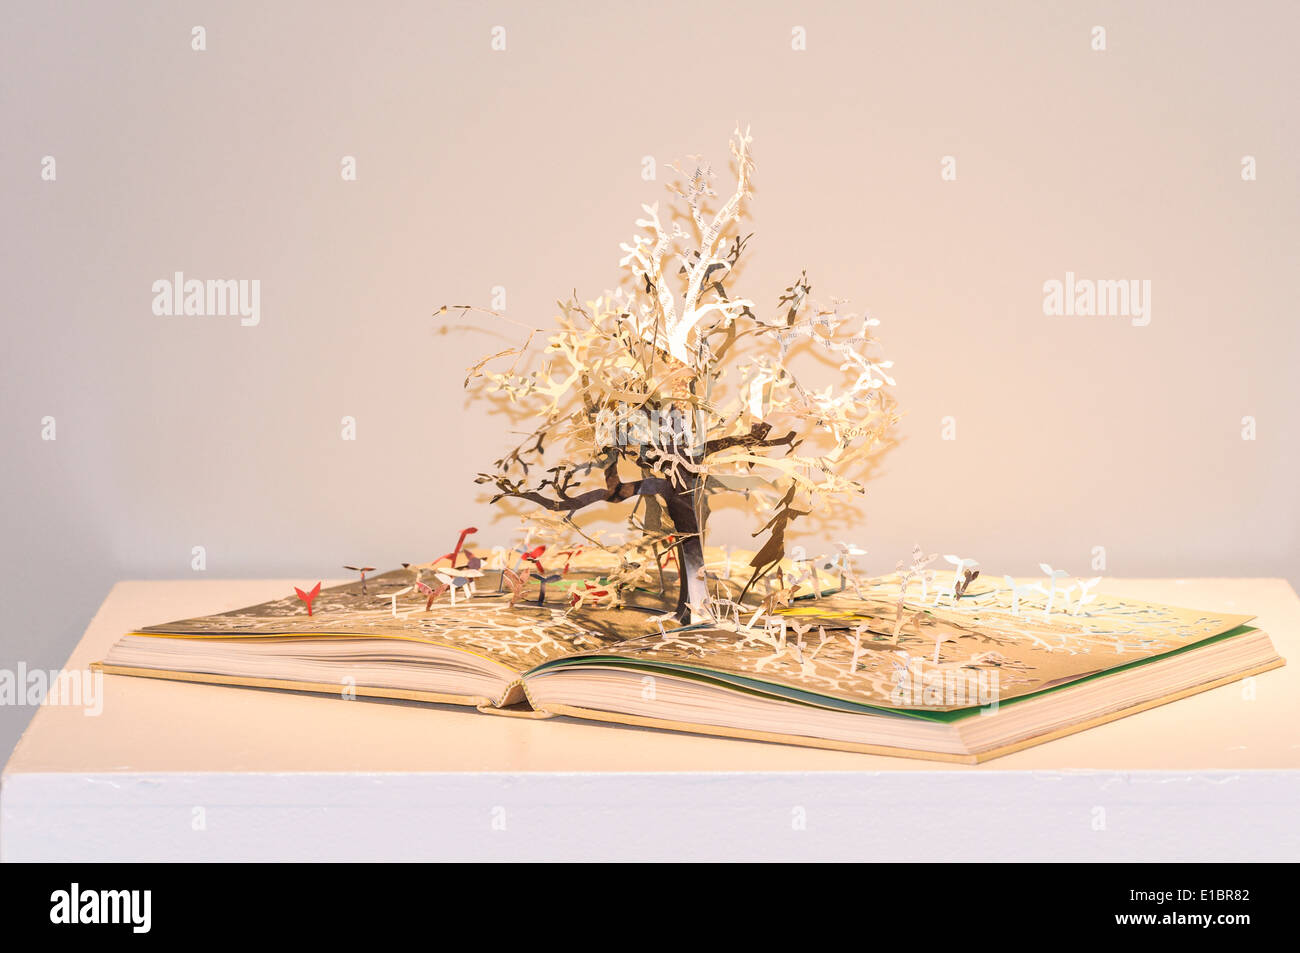 Book with pop up art tree. - Stock Image